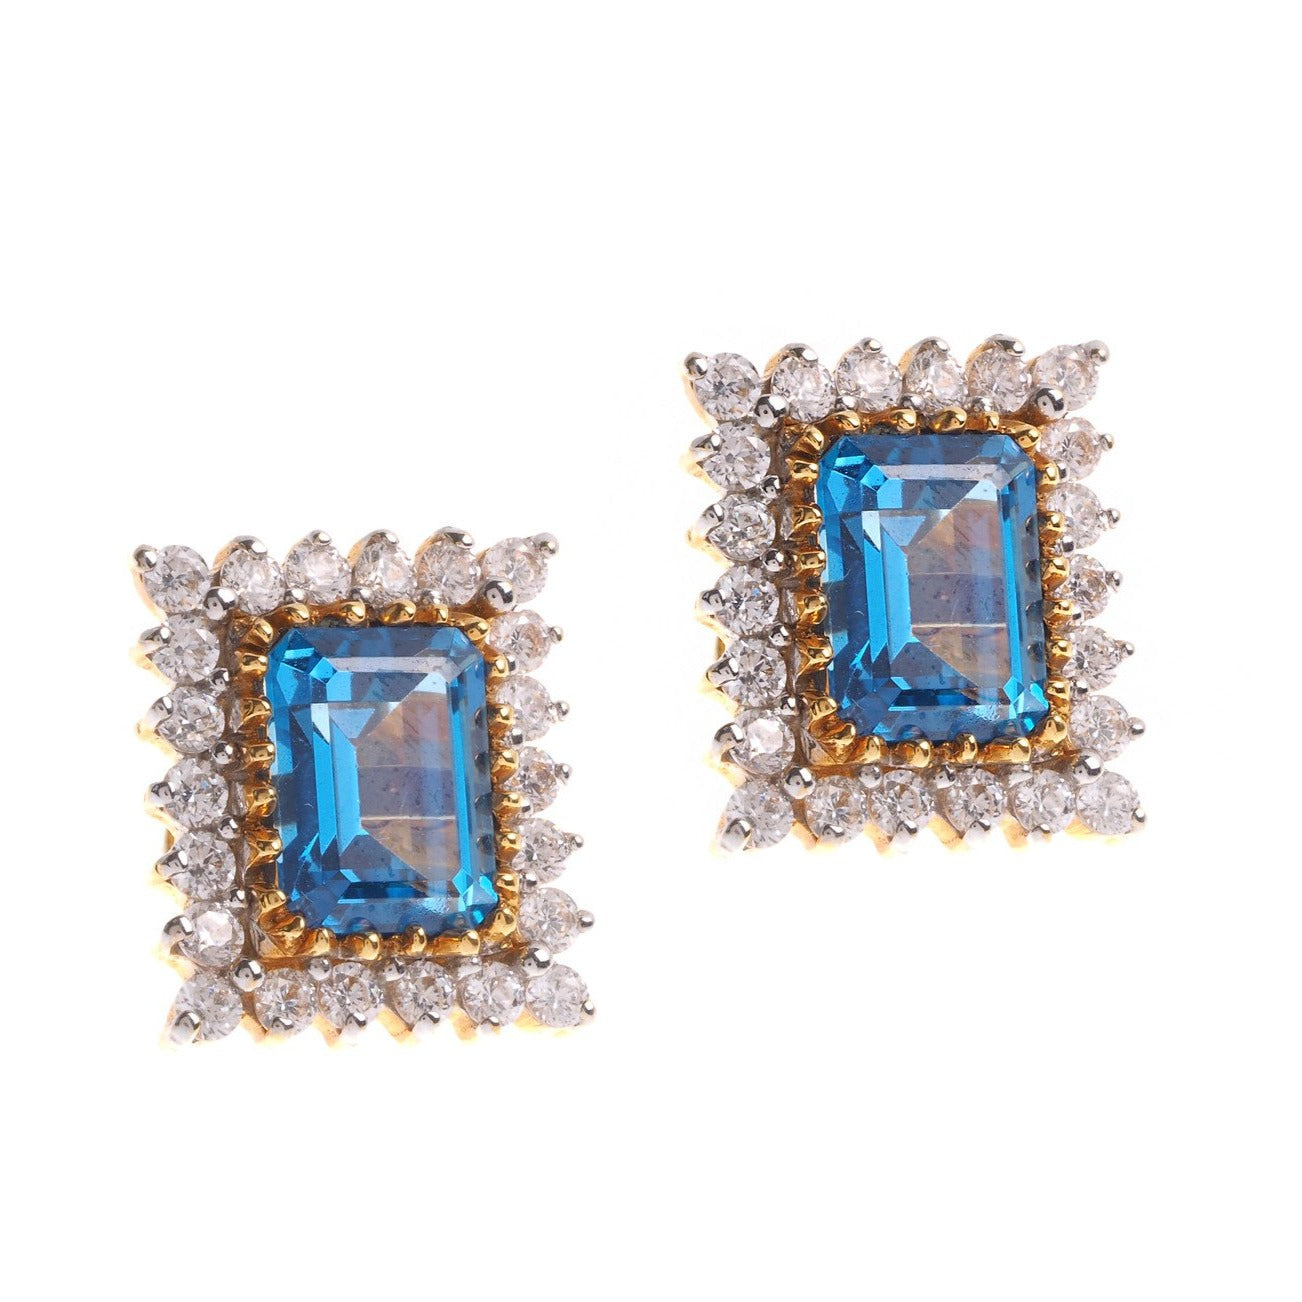 22ct Yellow Gold Earrings set with Blue Cubic Zirconia stones (G1383), Minar Jewellers - 2